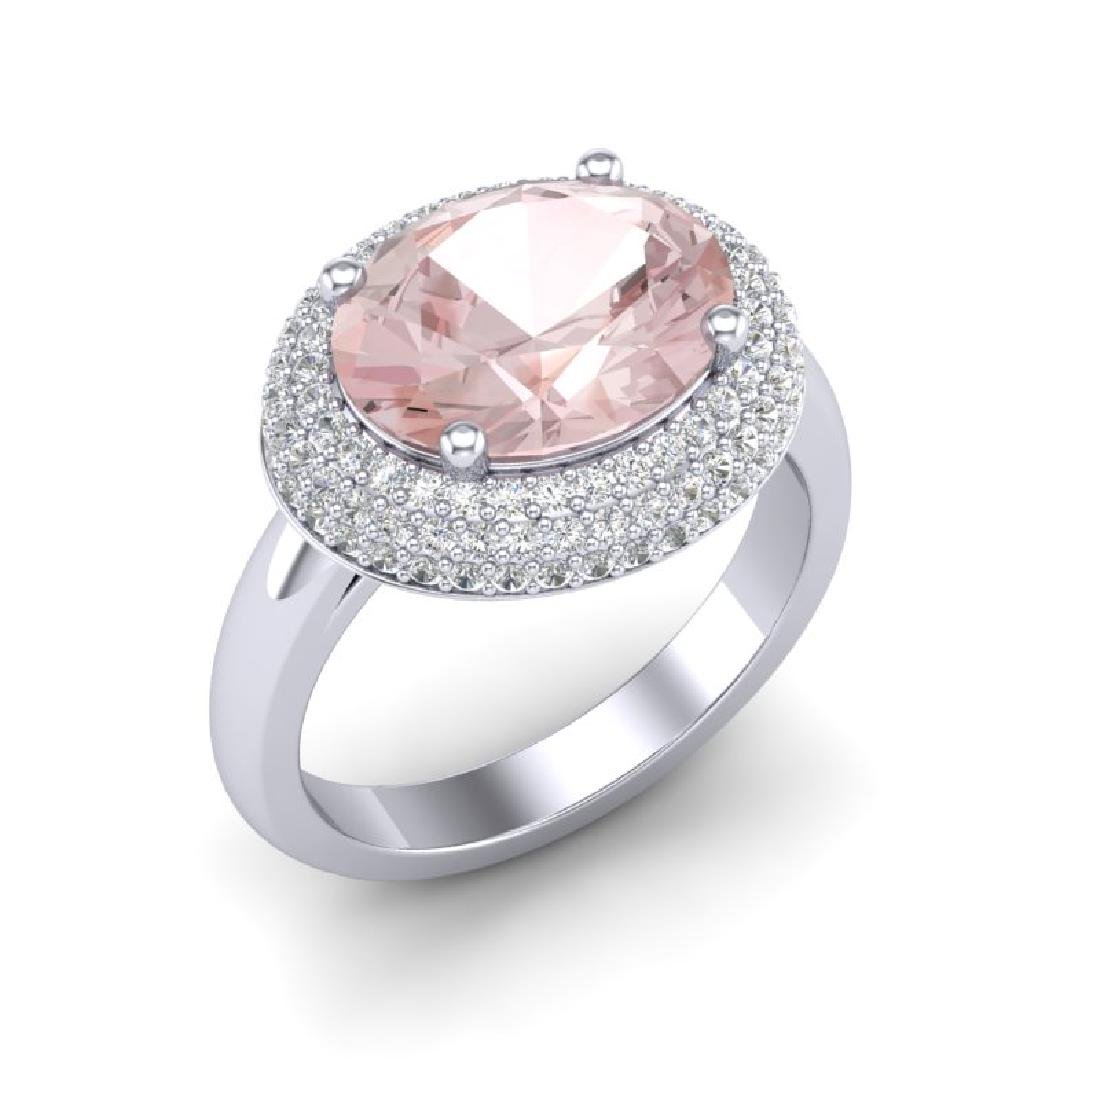 4.50 CTW Morganite & Micro Pave VS/SI Diamond Ring 18K